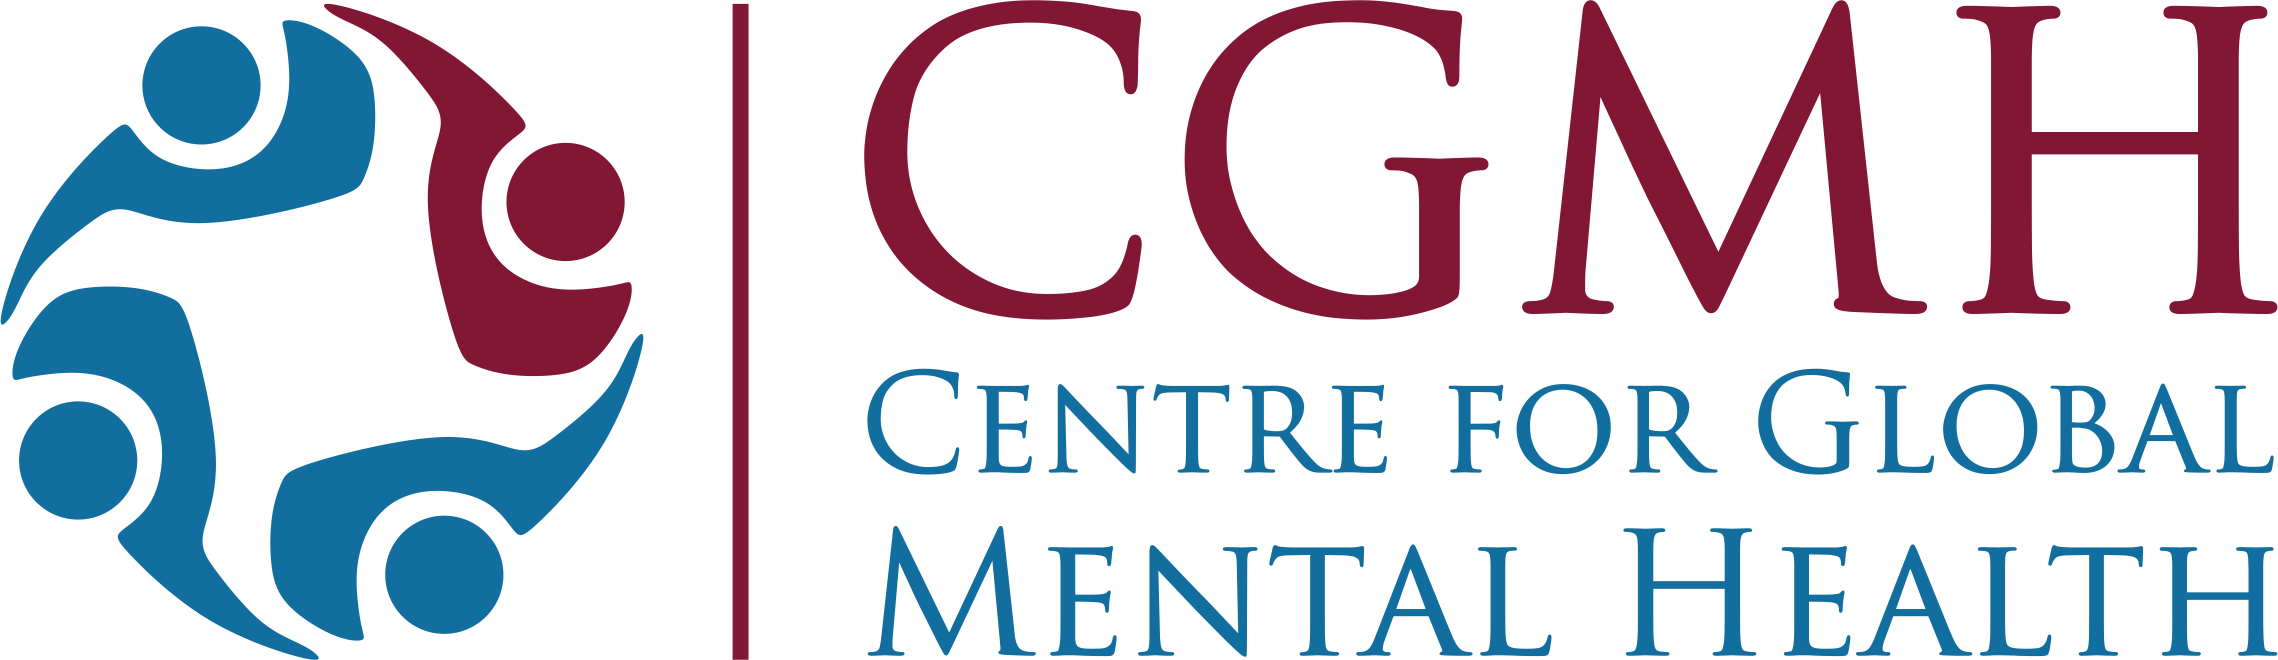 centre for global mental health - CGMH address inequity by closing the treatment gap, and to reduce human rights abuses experienced by people living with mental, neurological and substance use conditions, particularly in low resource settings.